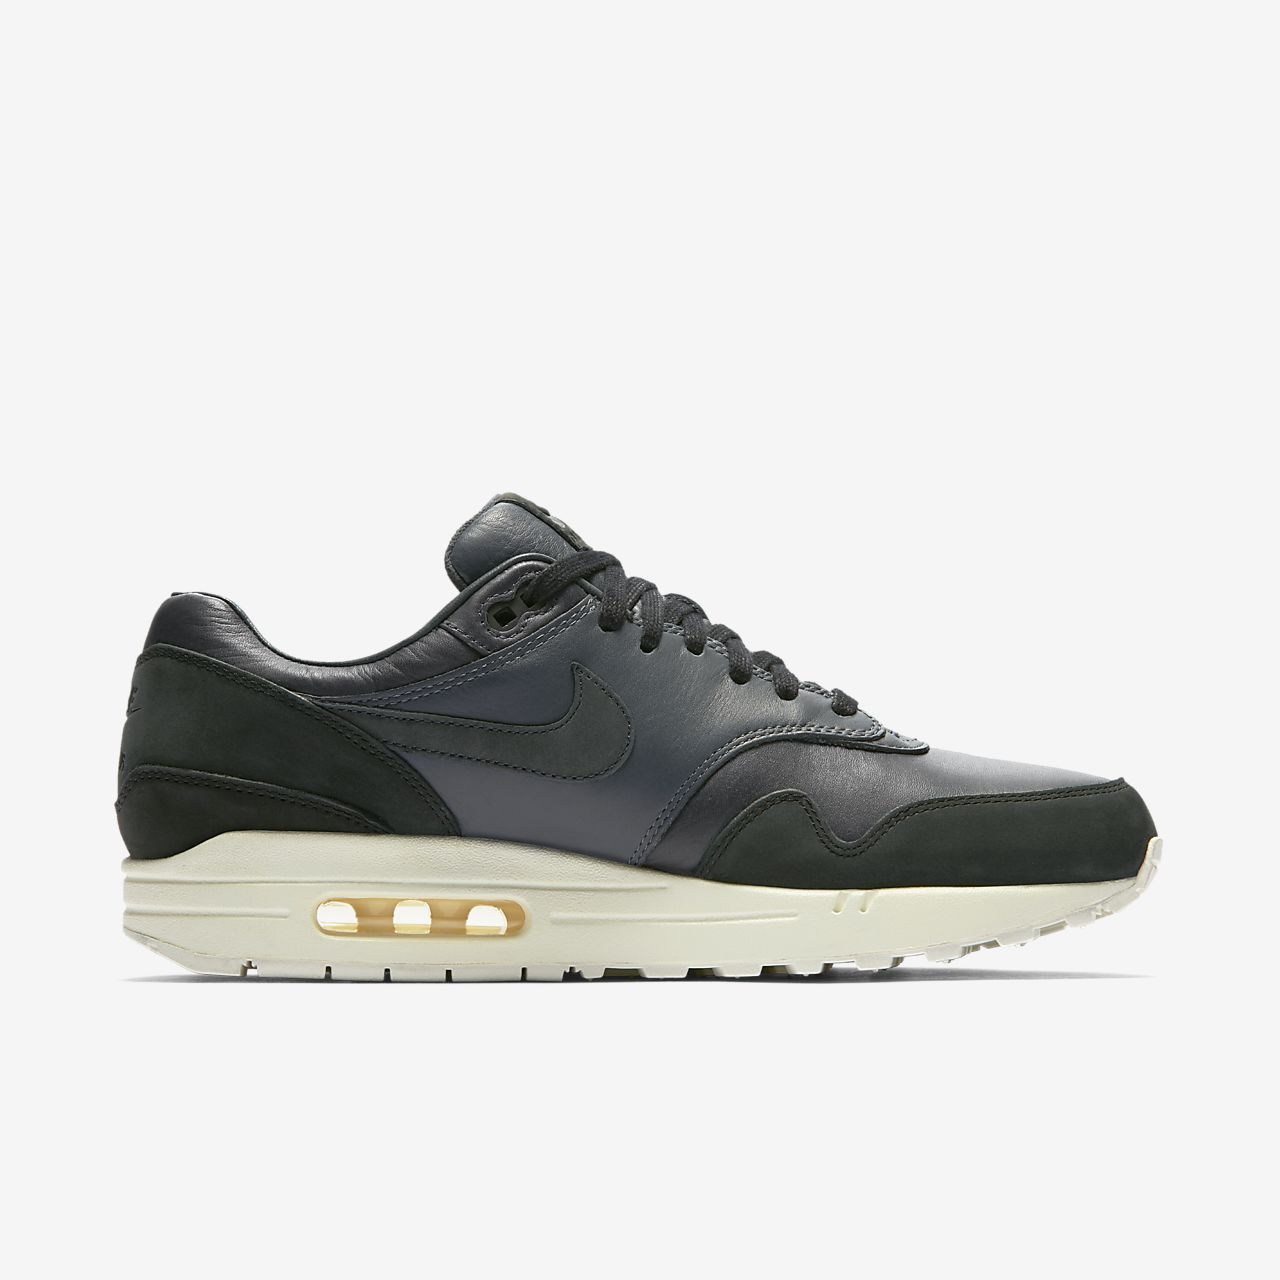 nike air max dames sale maat 39